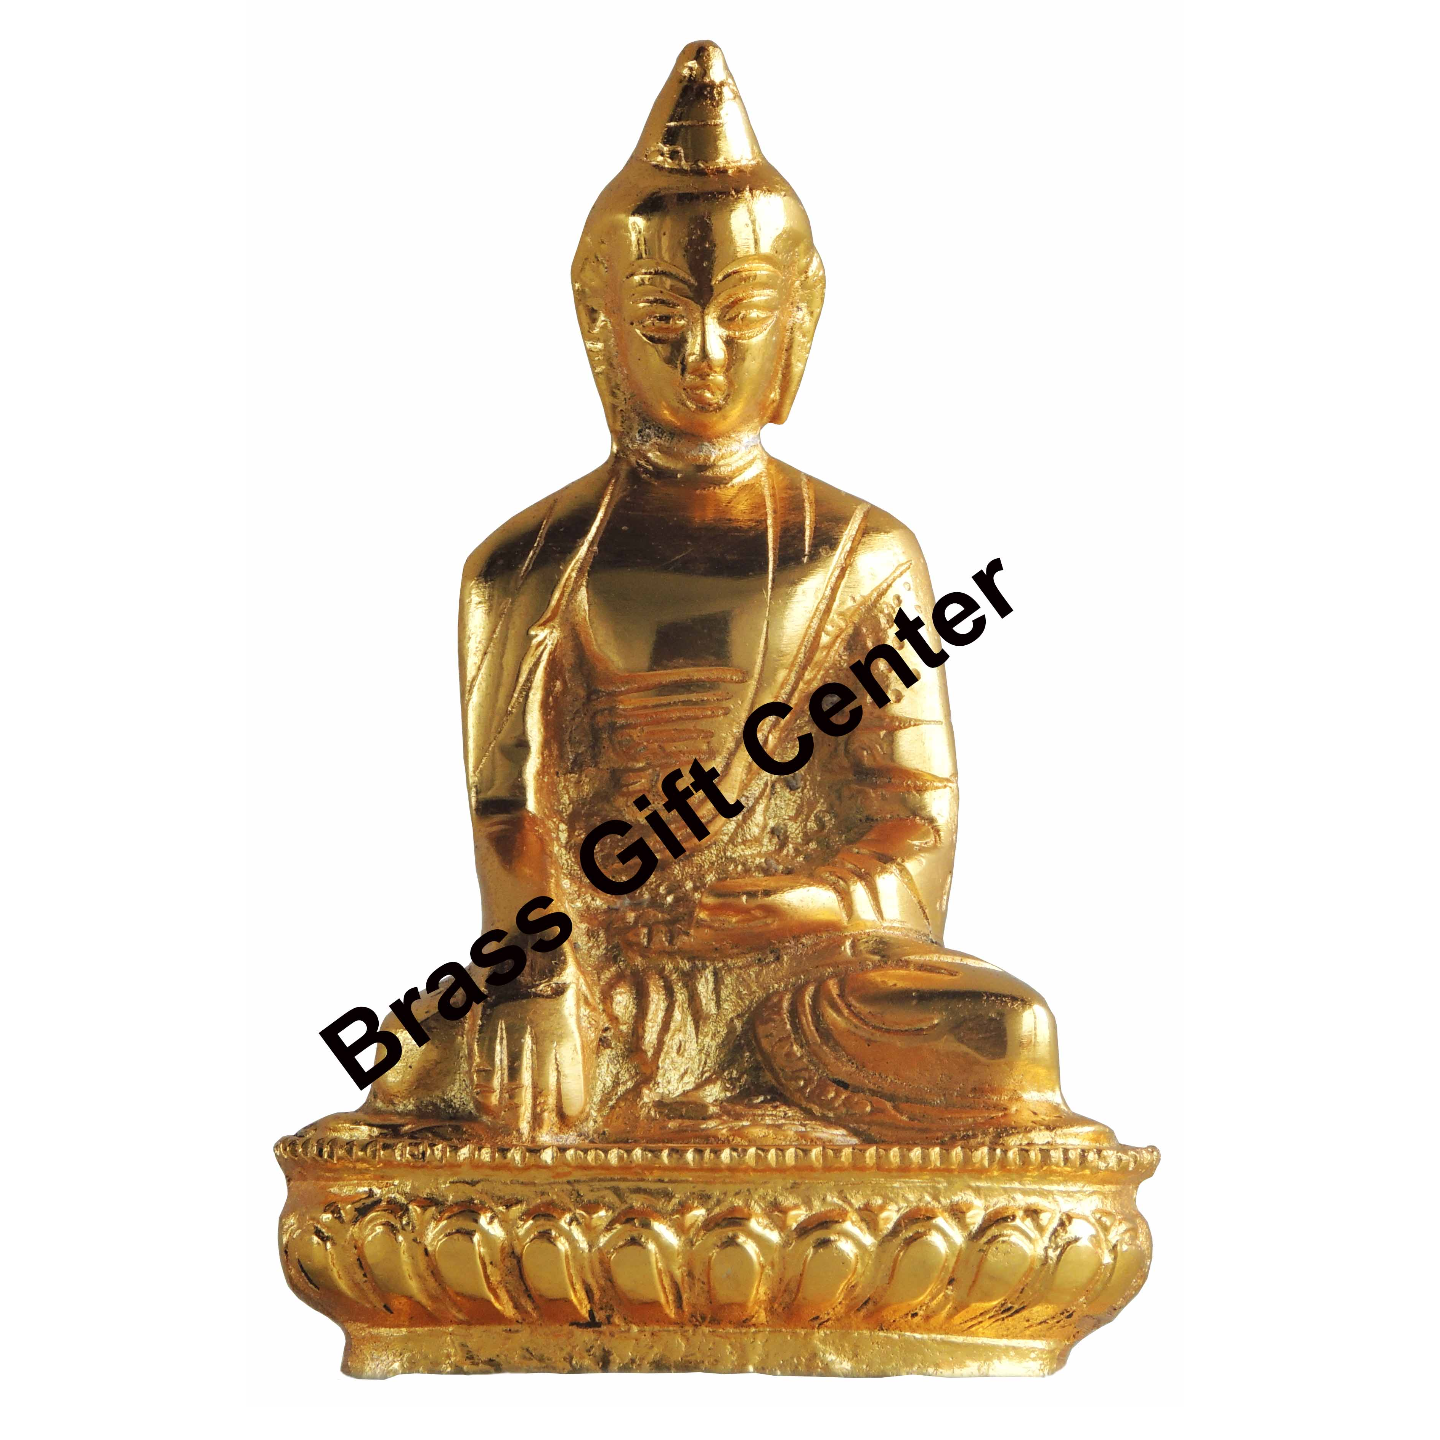 Aluminium Buddha Statue Murti Idol Gold finish - 3.5*2.6*6 Inch (AS220 G)